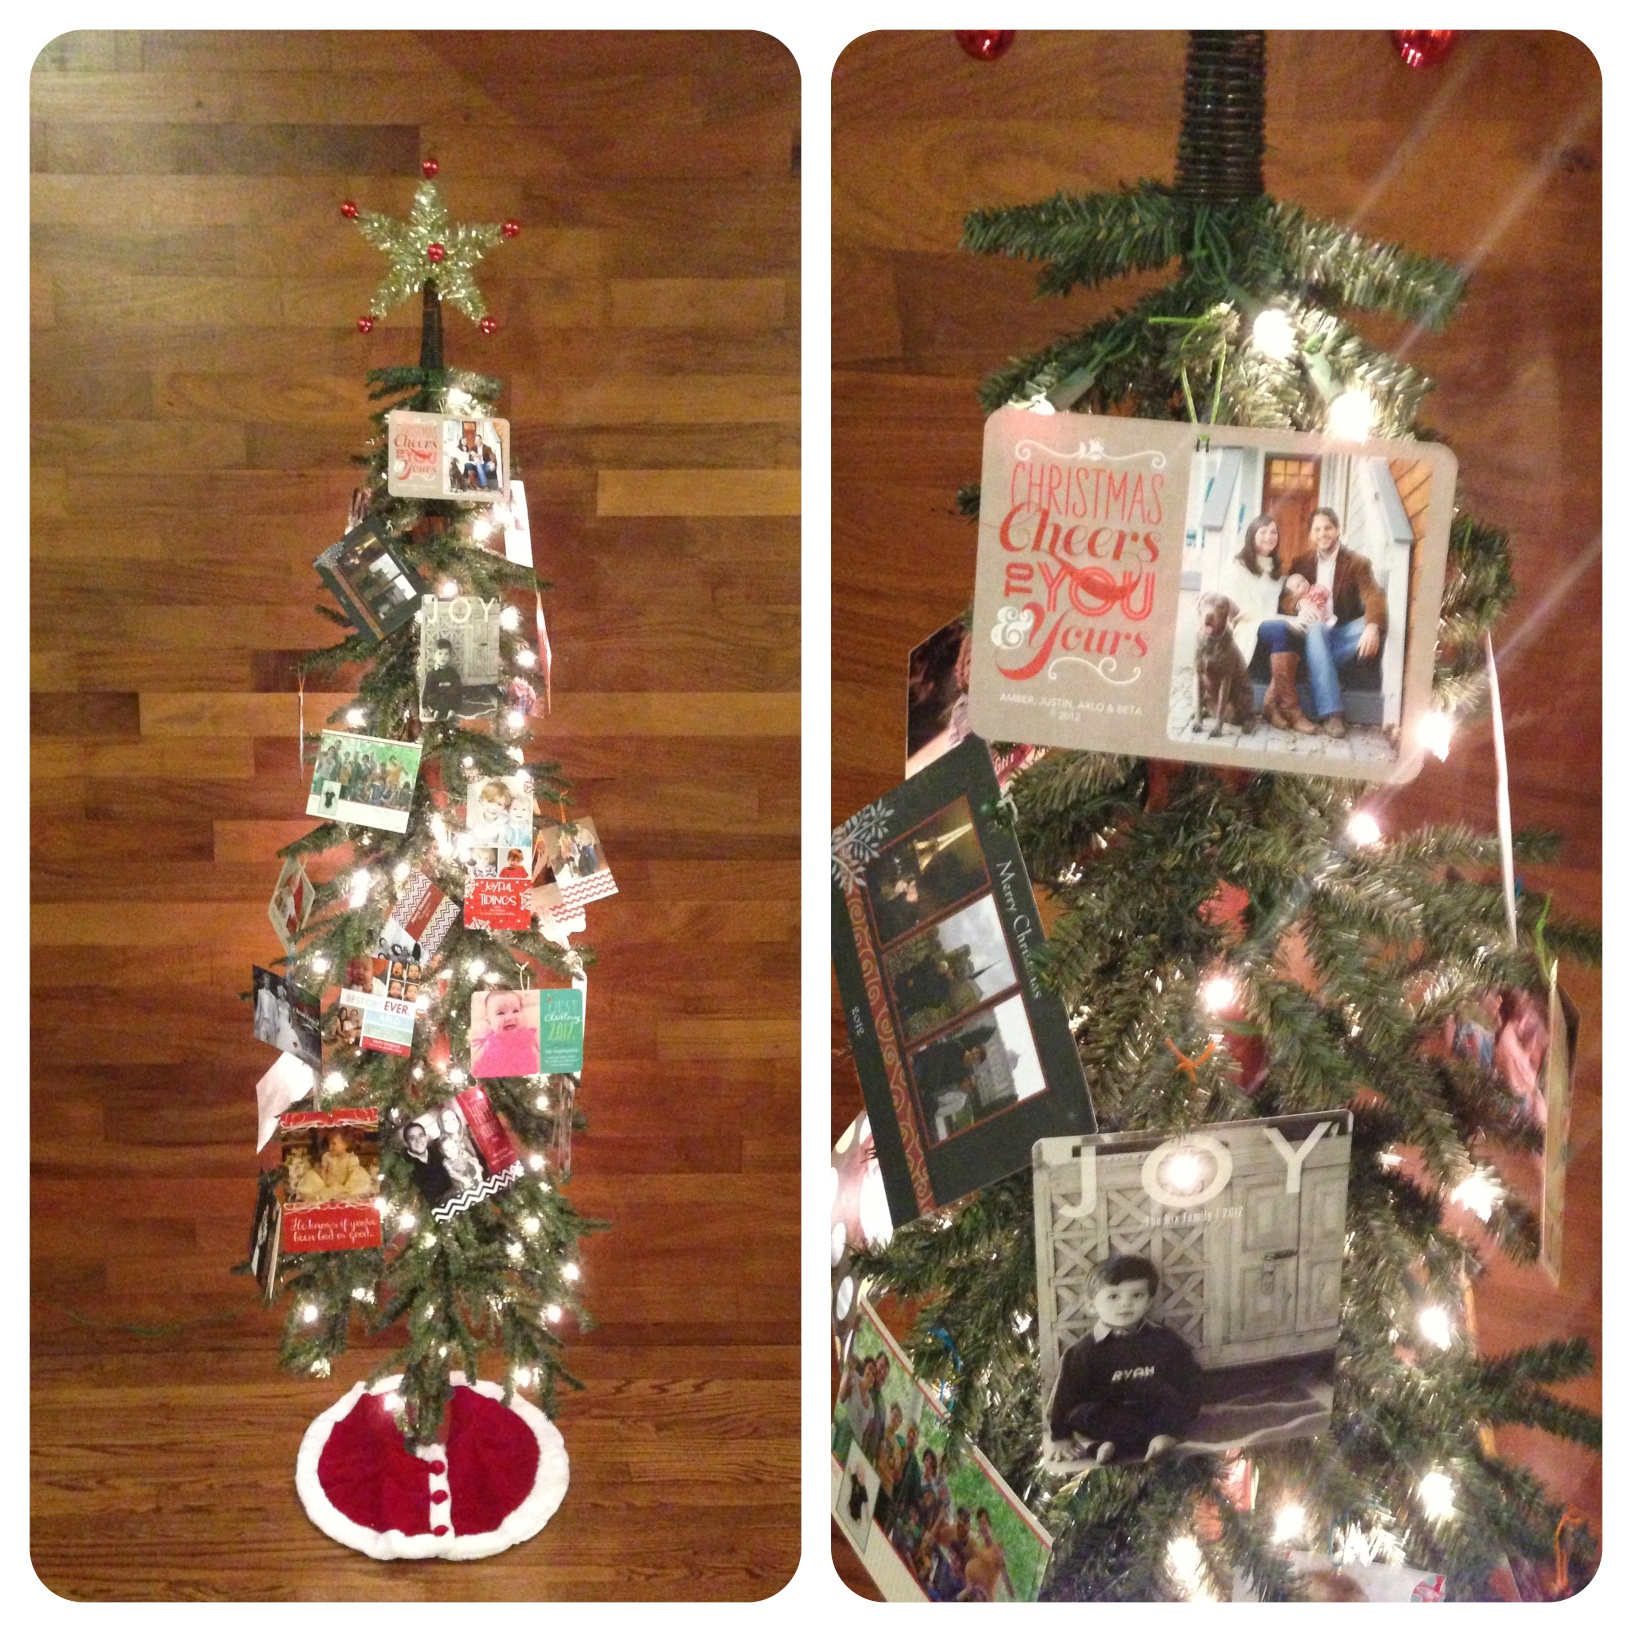 Secondary tree showcases all our family and friend's Christmas cards. OK, Amber put ours on top...